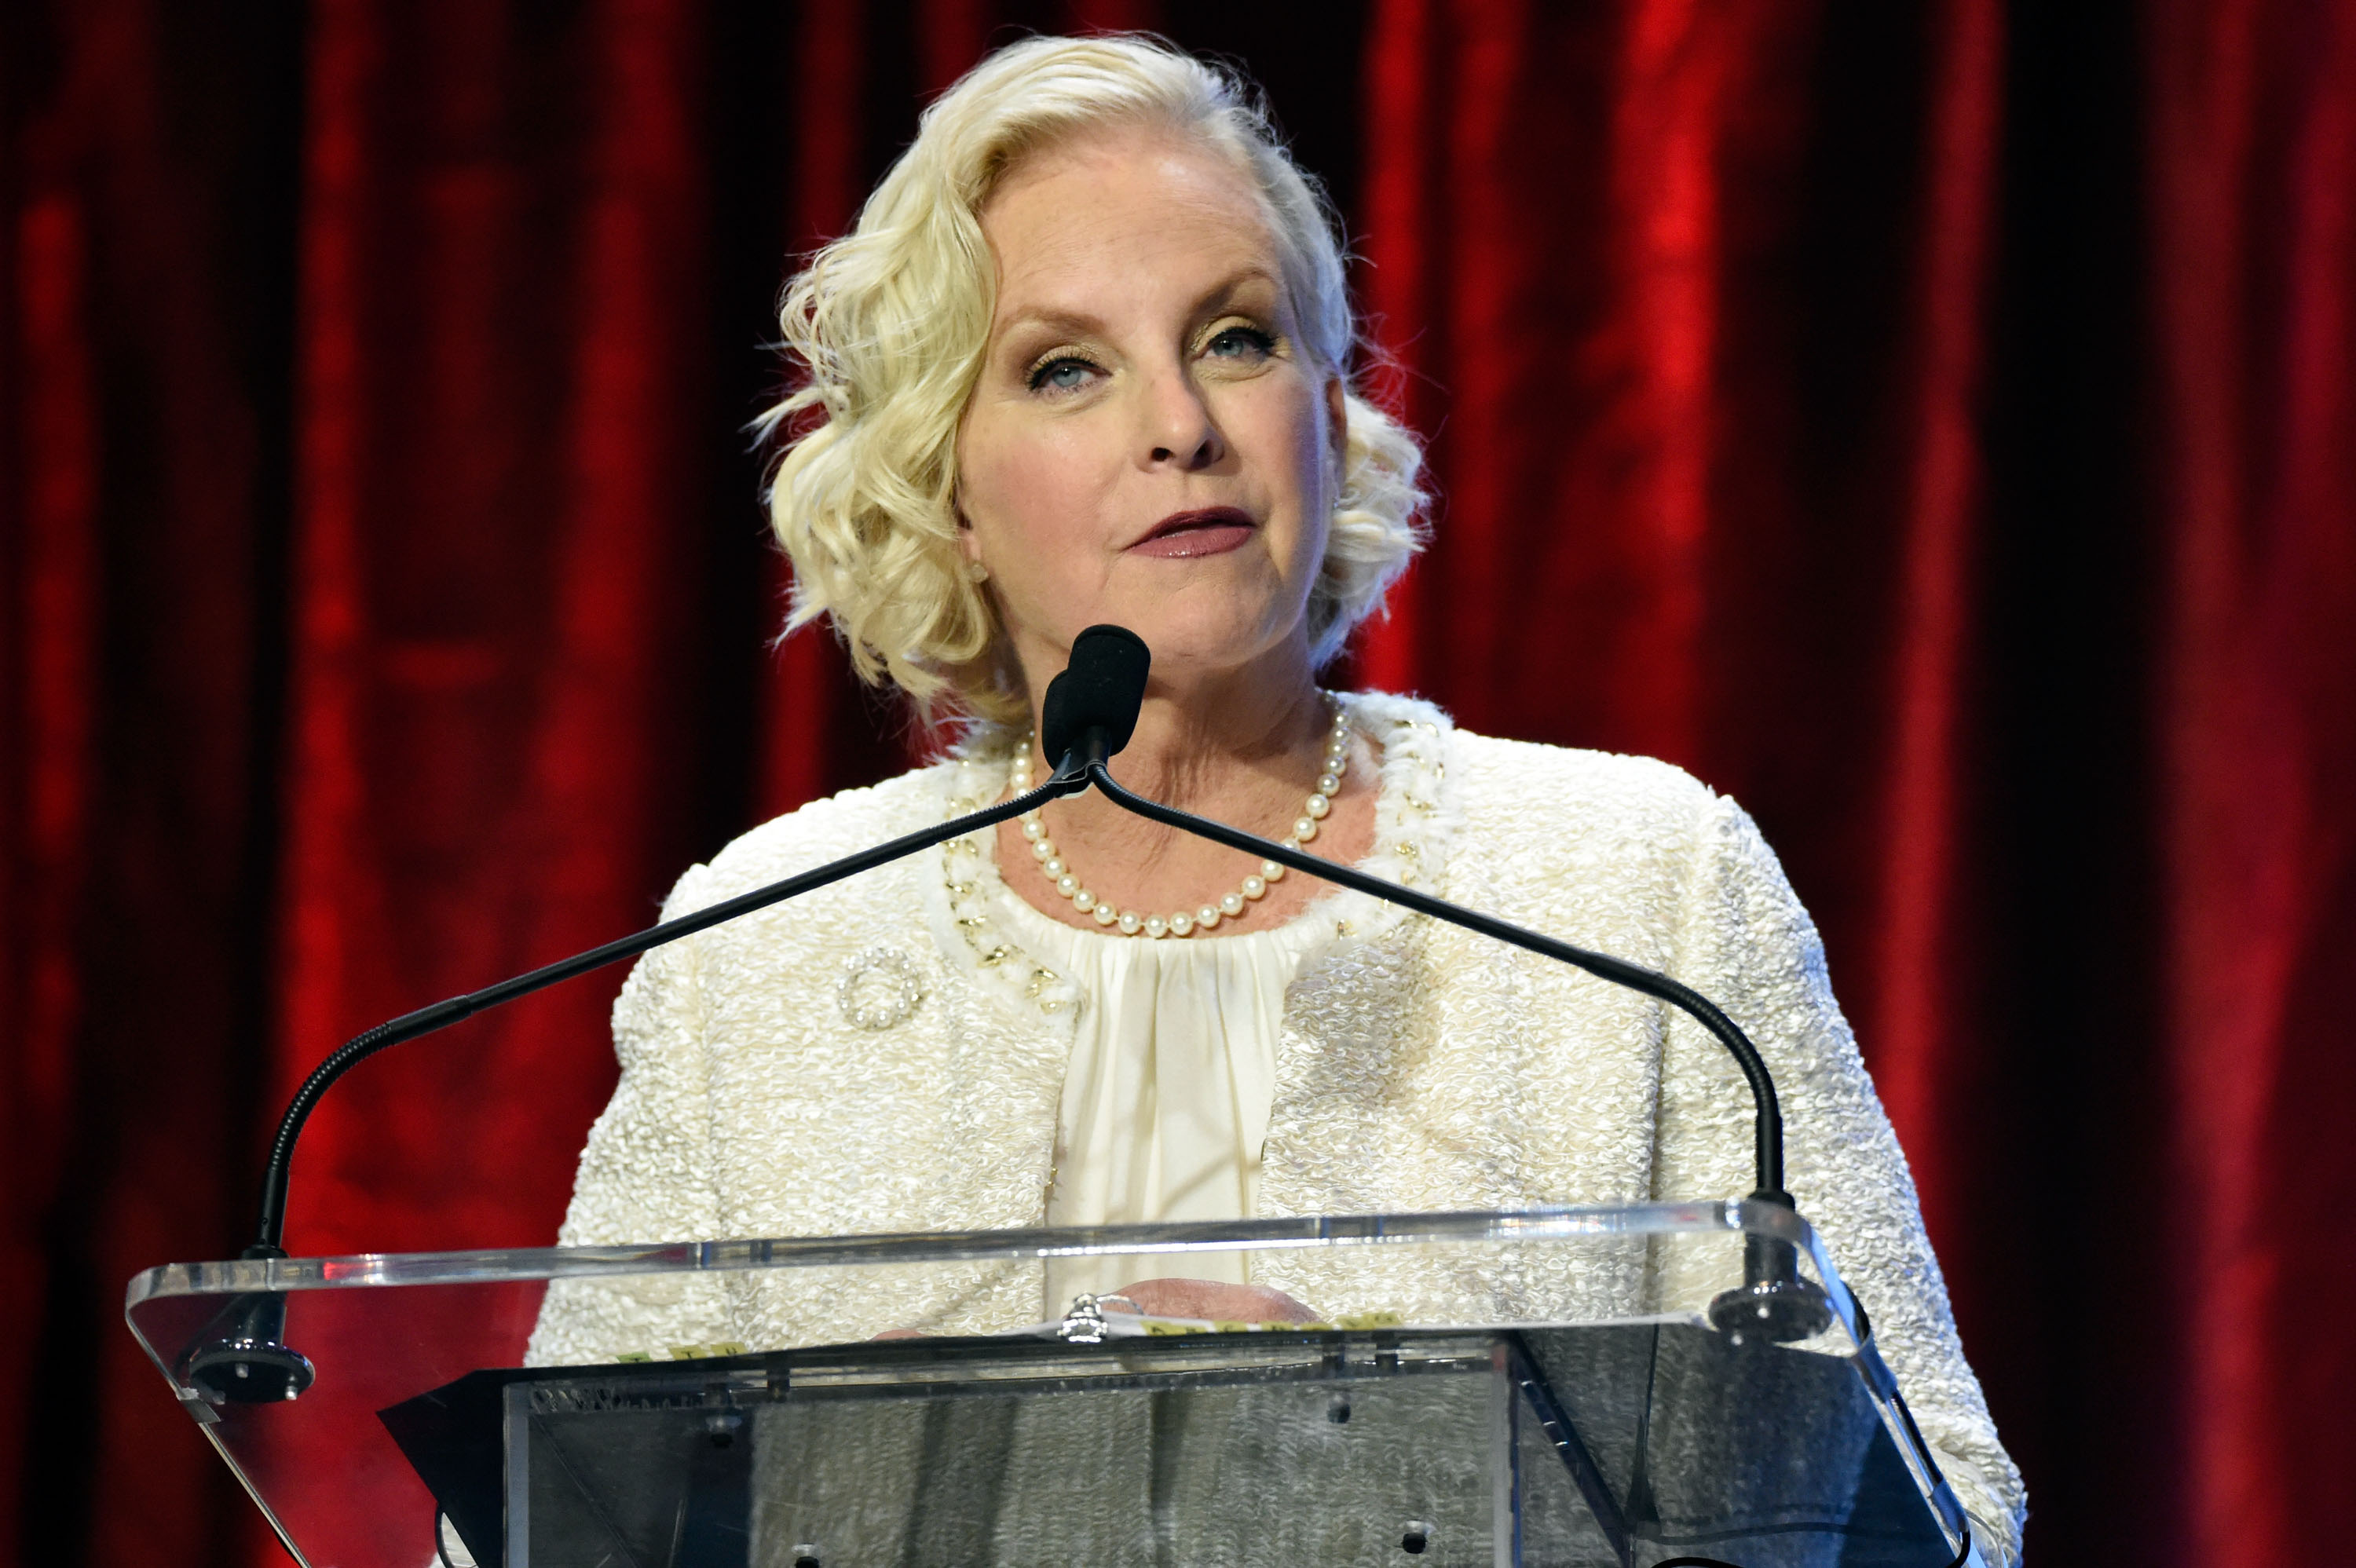 Cindy McCain attends the 2016 Muhammad Ali Humanitarian Awards in Louisville, Kentucky on Sept. 17, 2016.